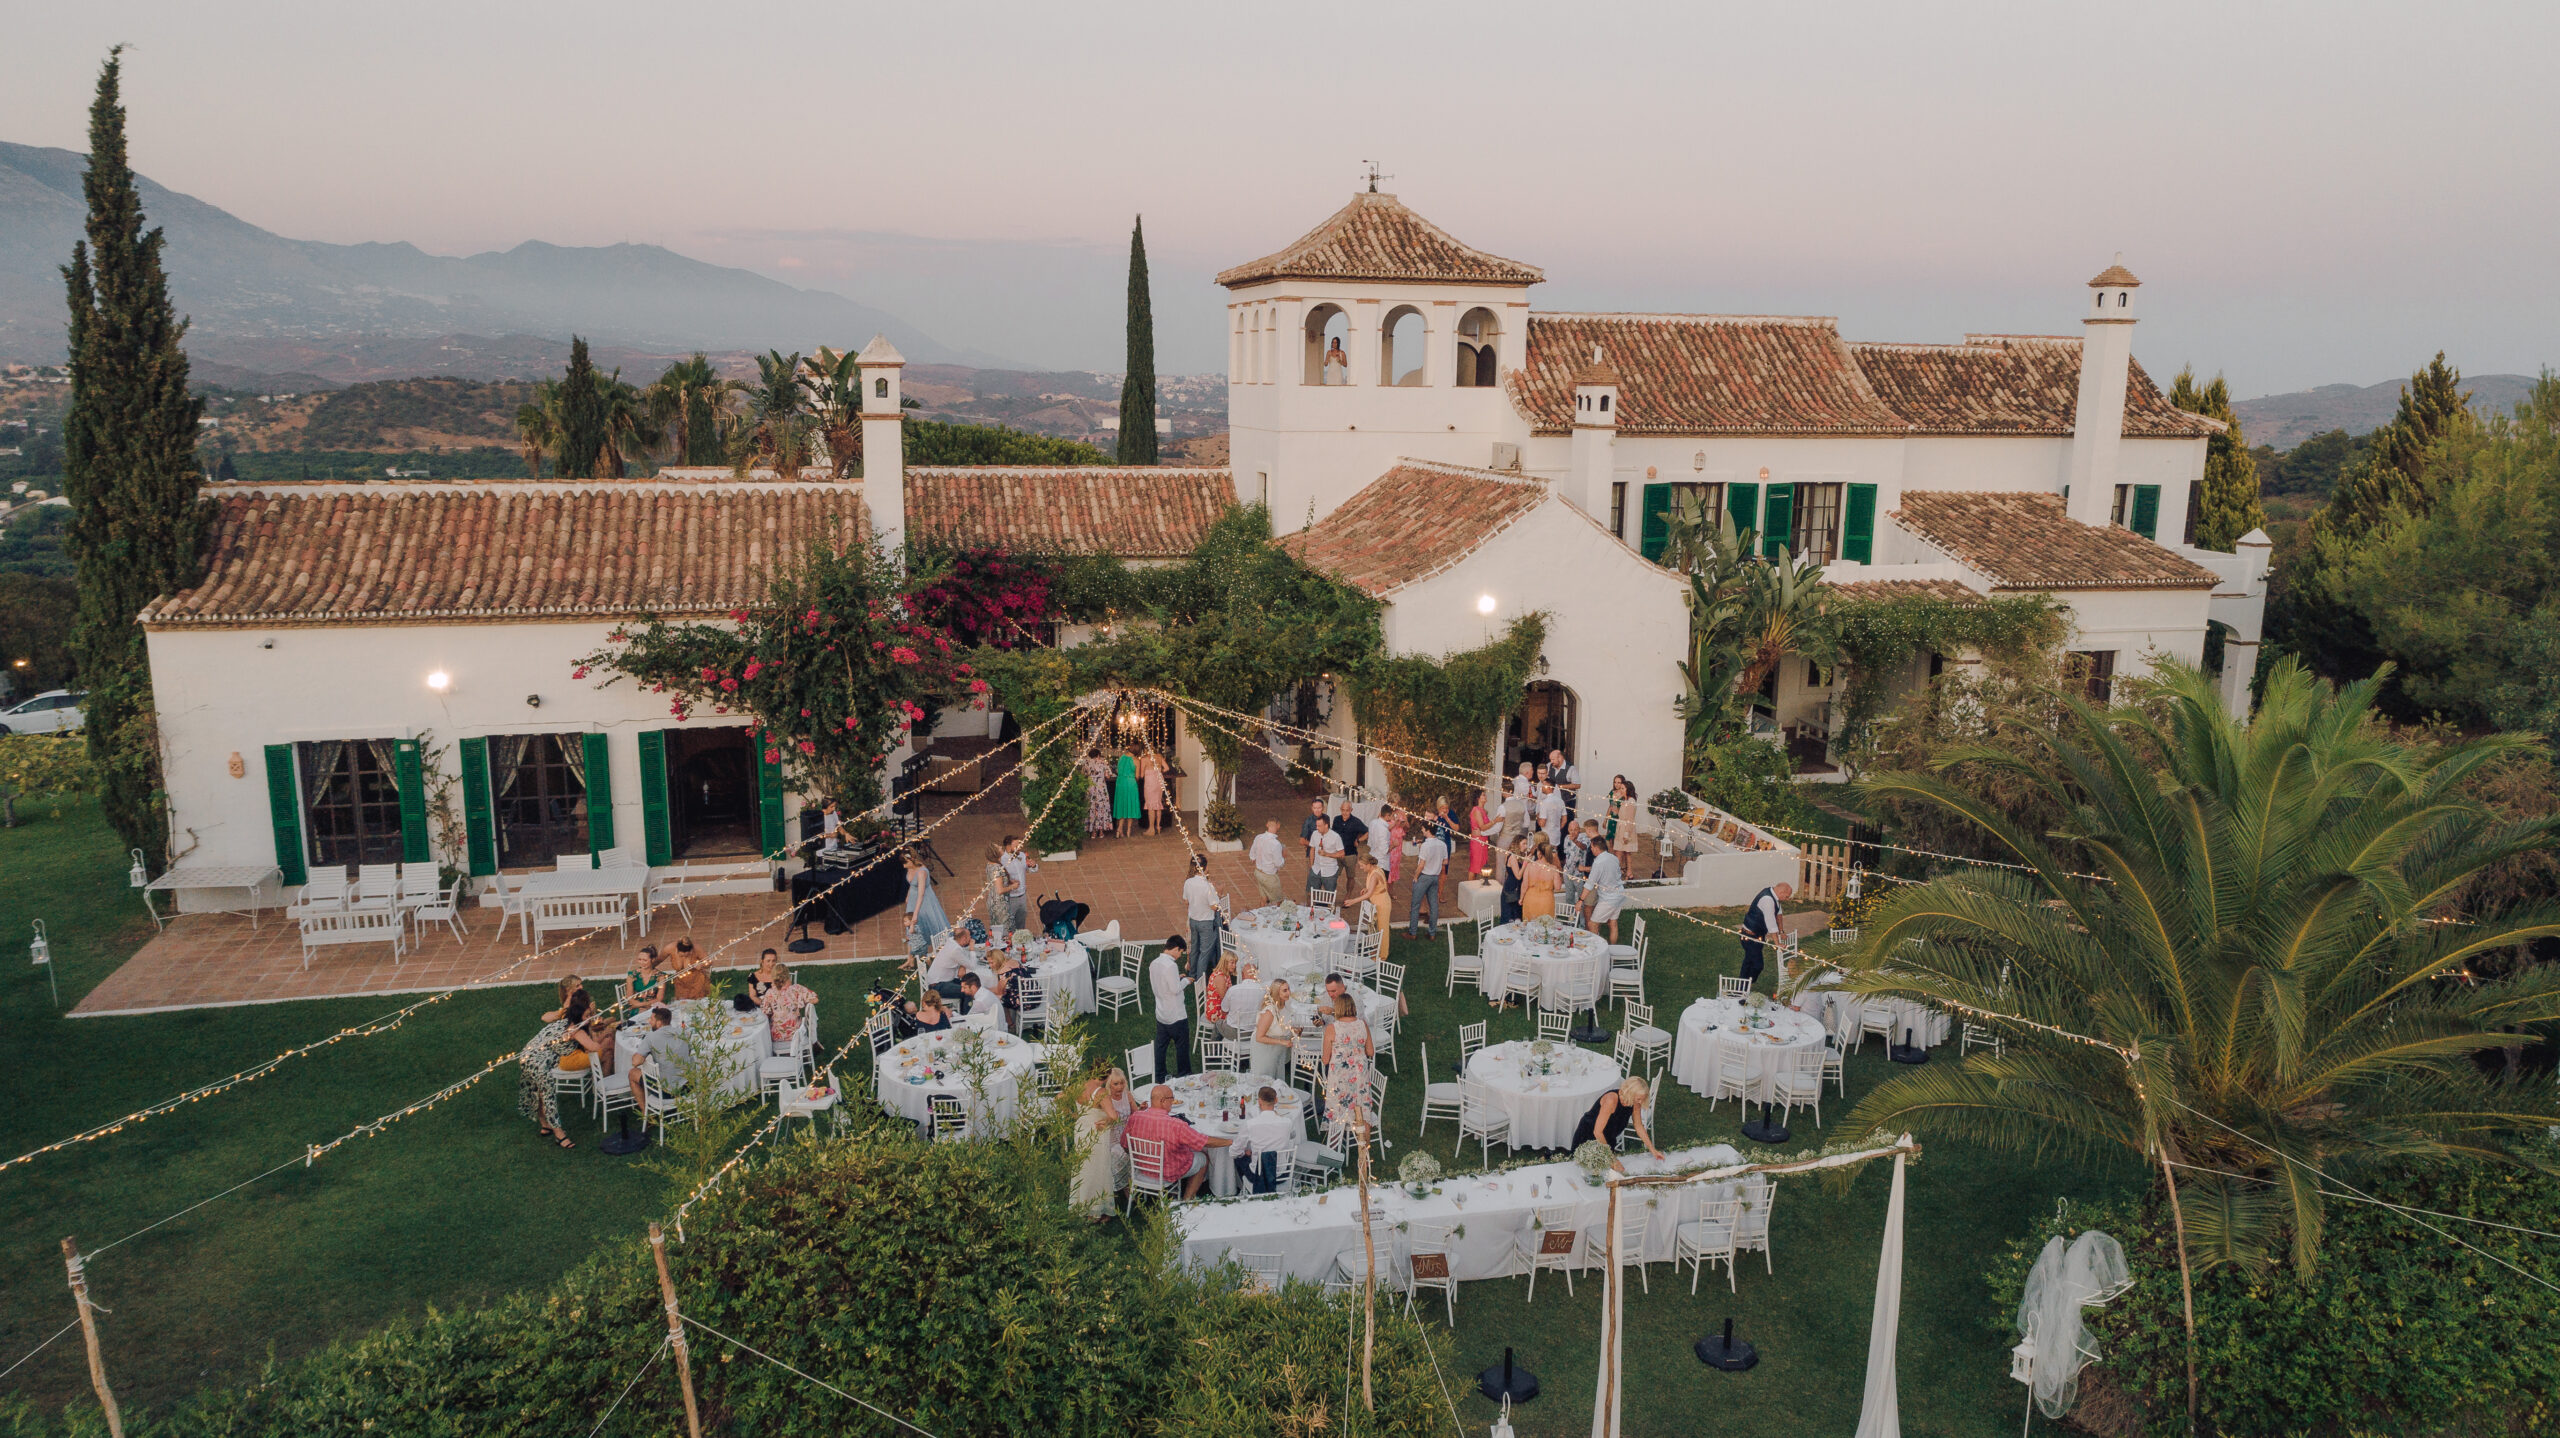 The Hacienda at sunset - Hove & Co Photography